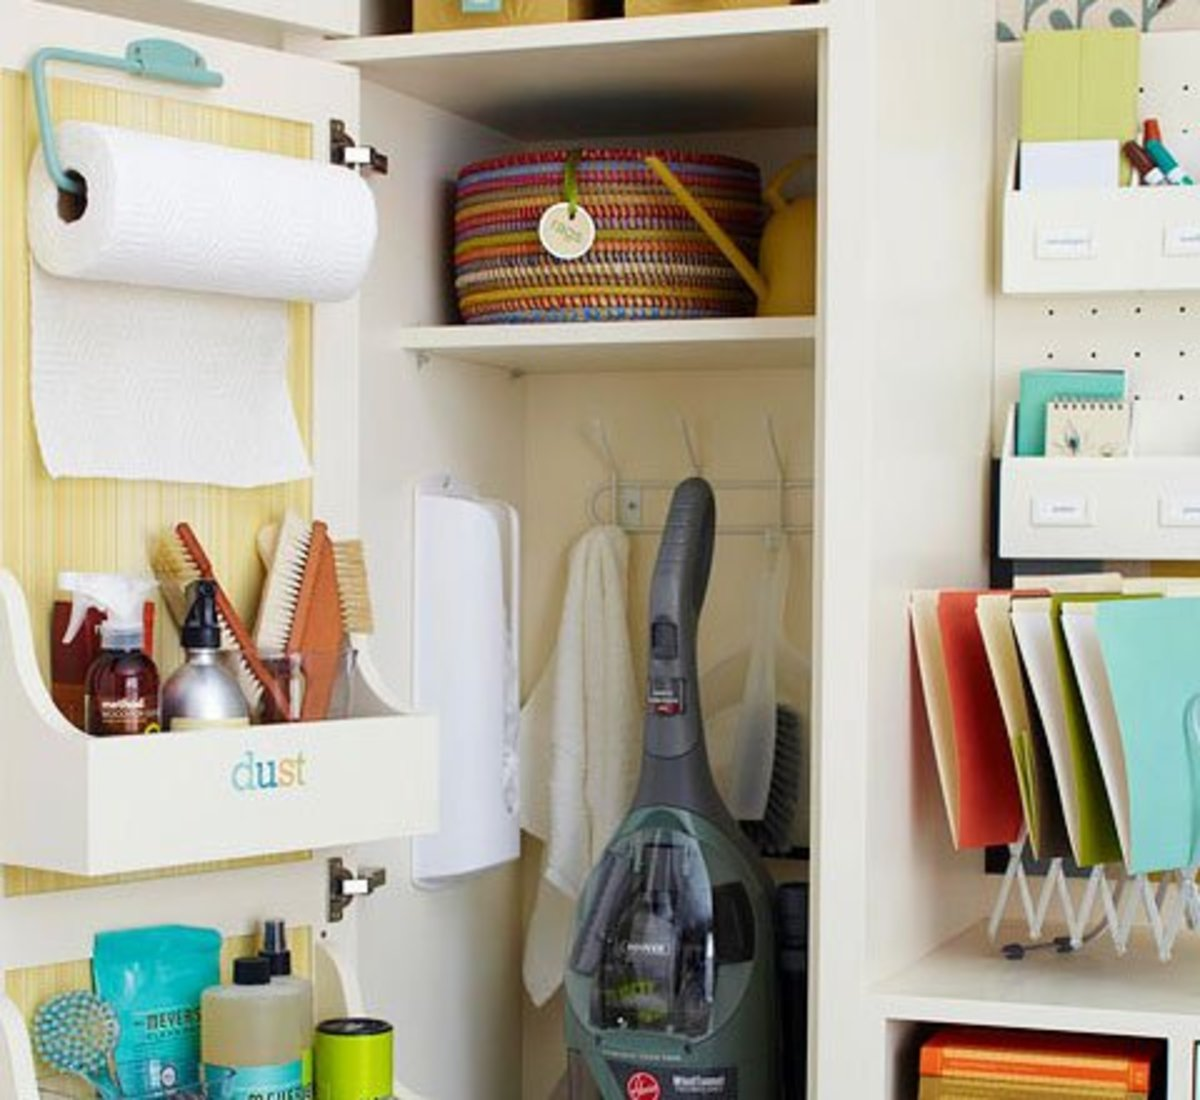 Cupboard Door Organizer Rack | Easy Organization Ideas for the Home